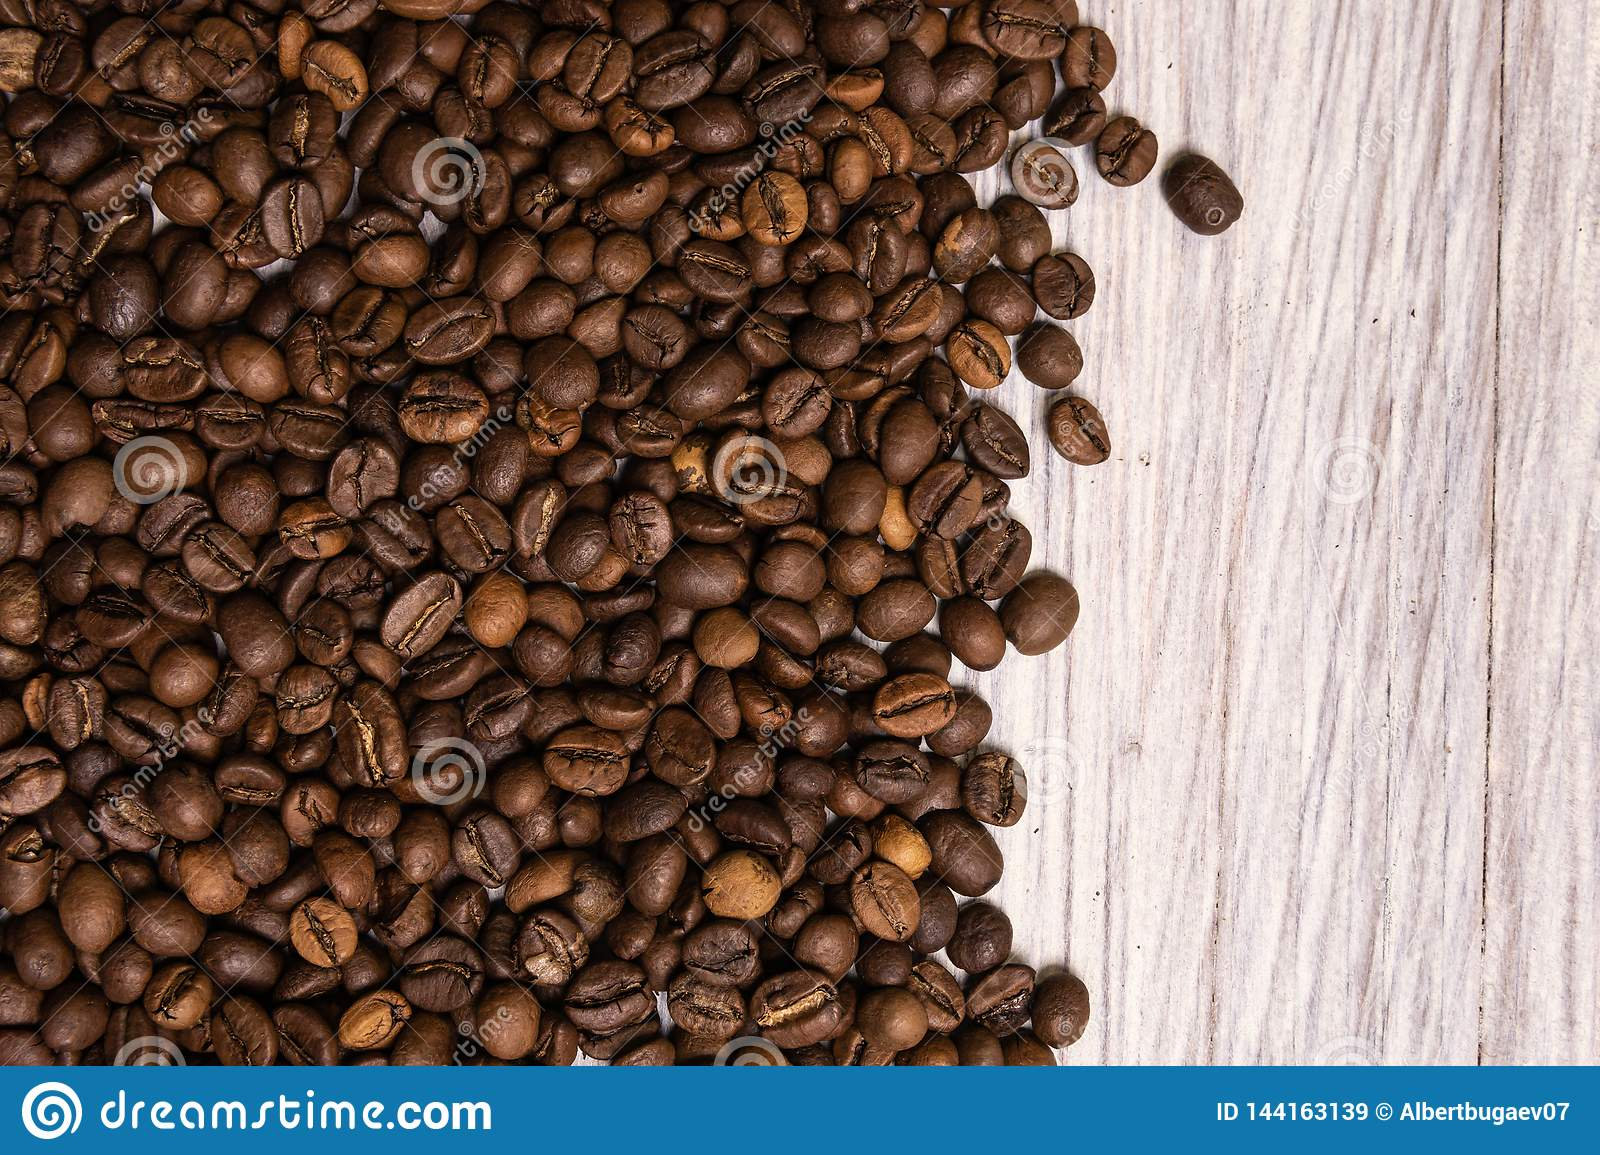 Roasted coffee beans in bulk on a light wooden background. dark cofee roasted grain flavor aroma cafe, natural coffe shop